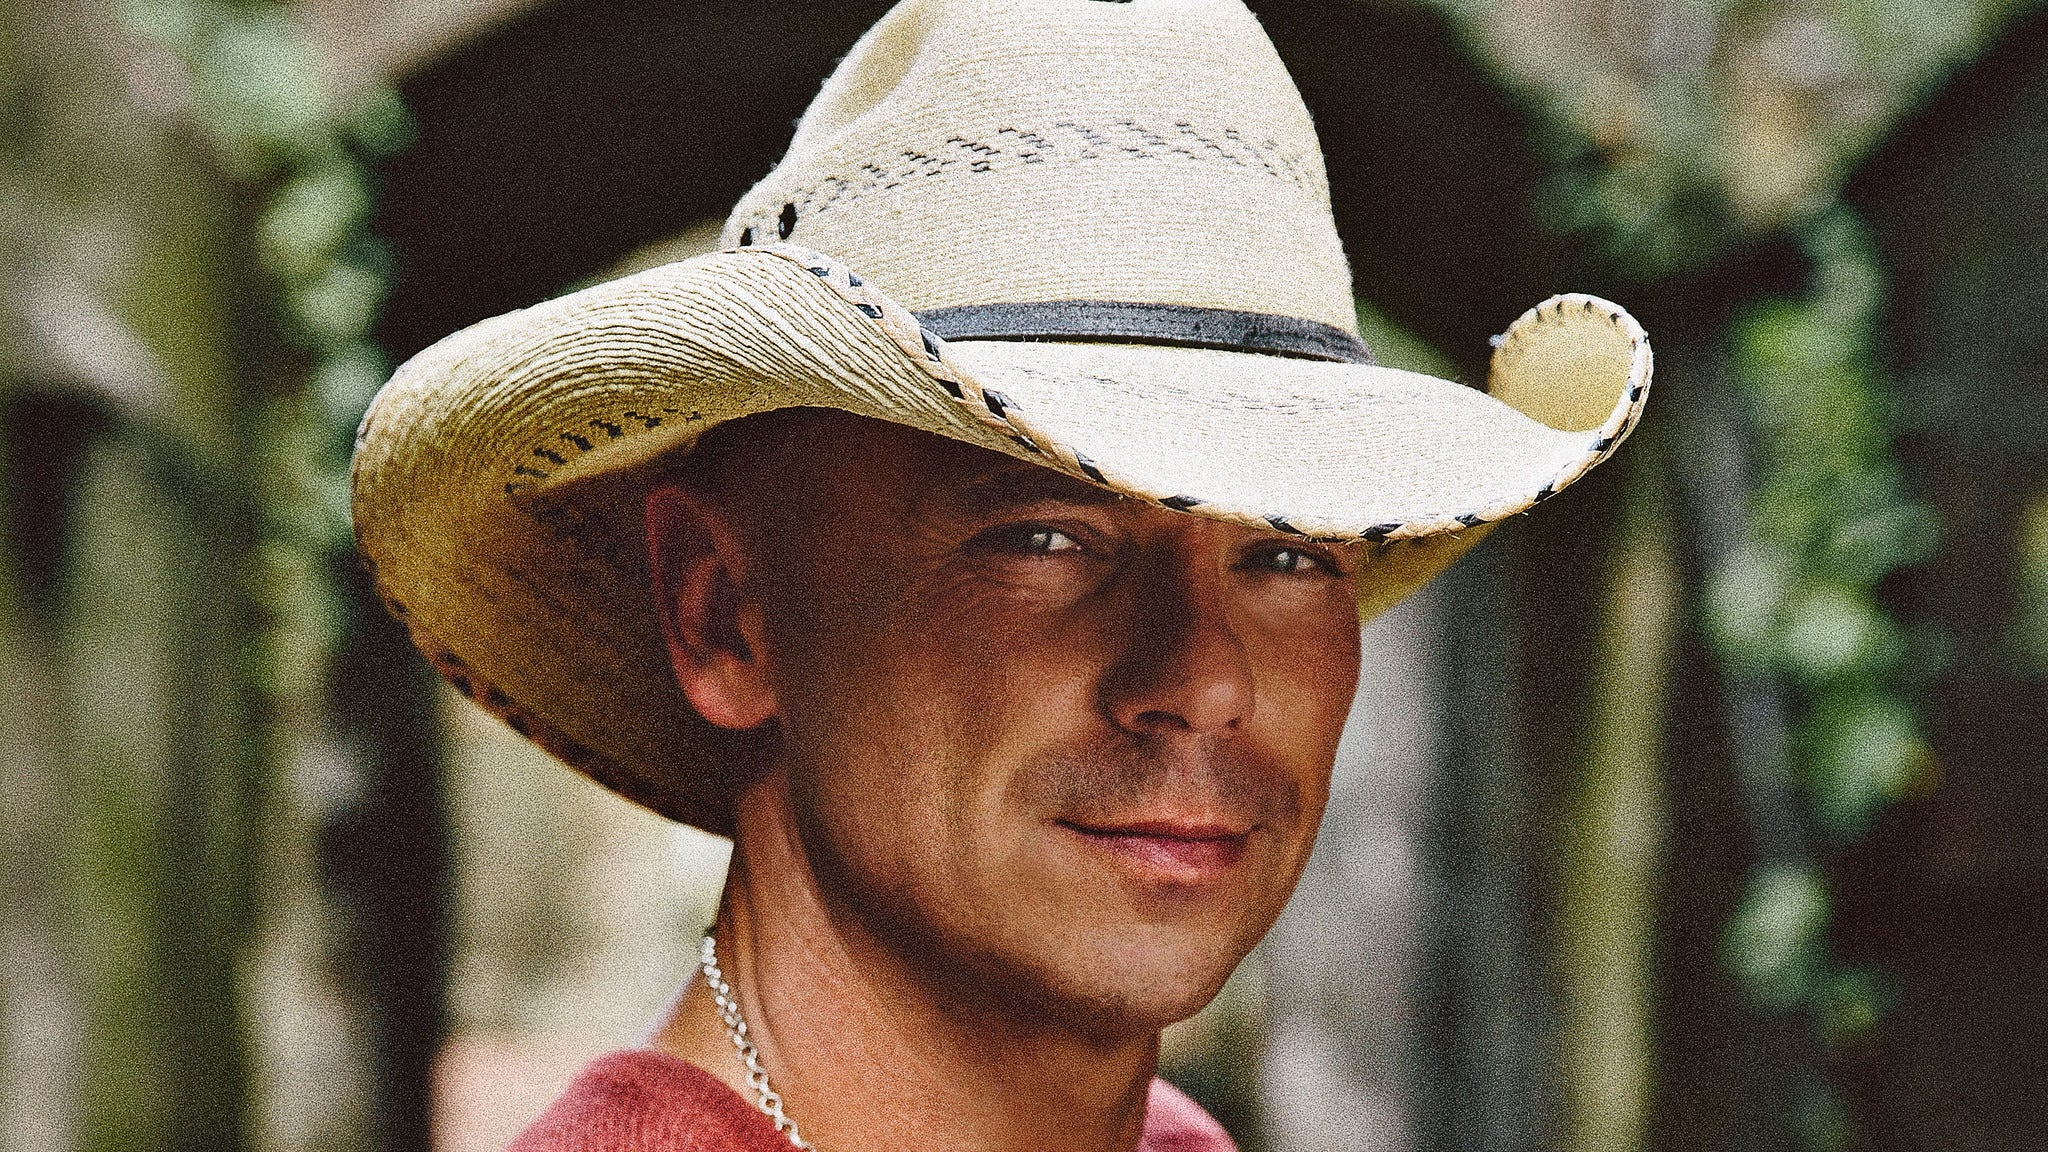 Kenny Chesney at The Wharf Amphitheater